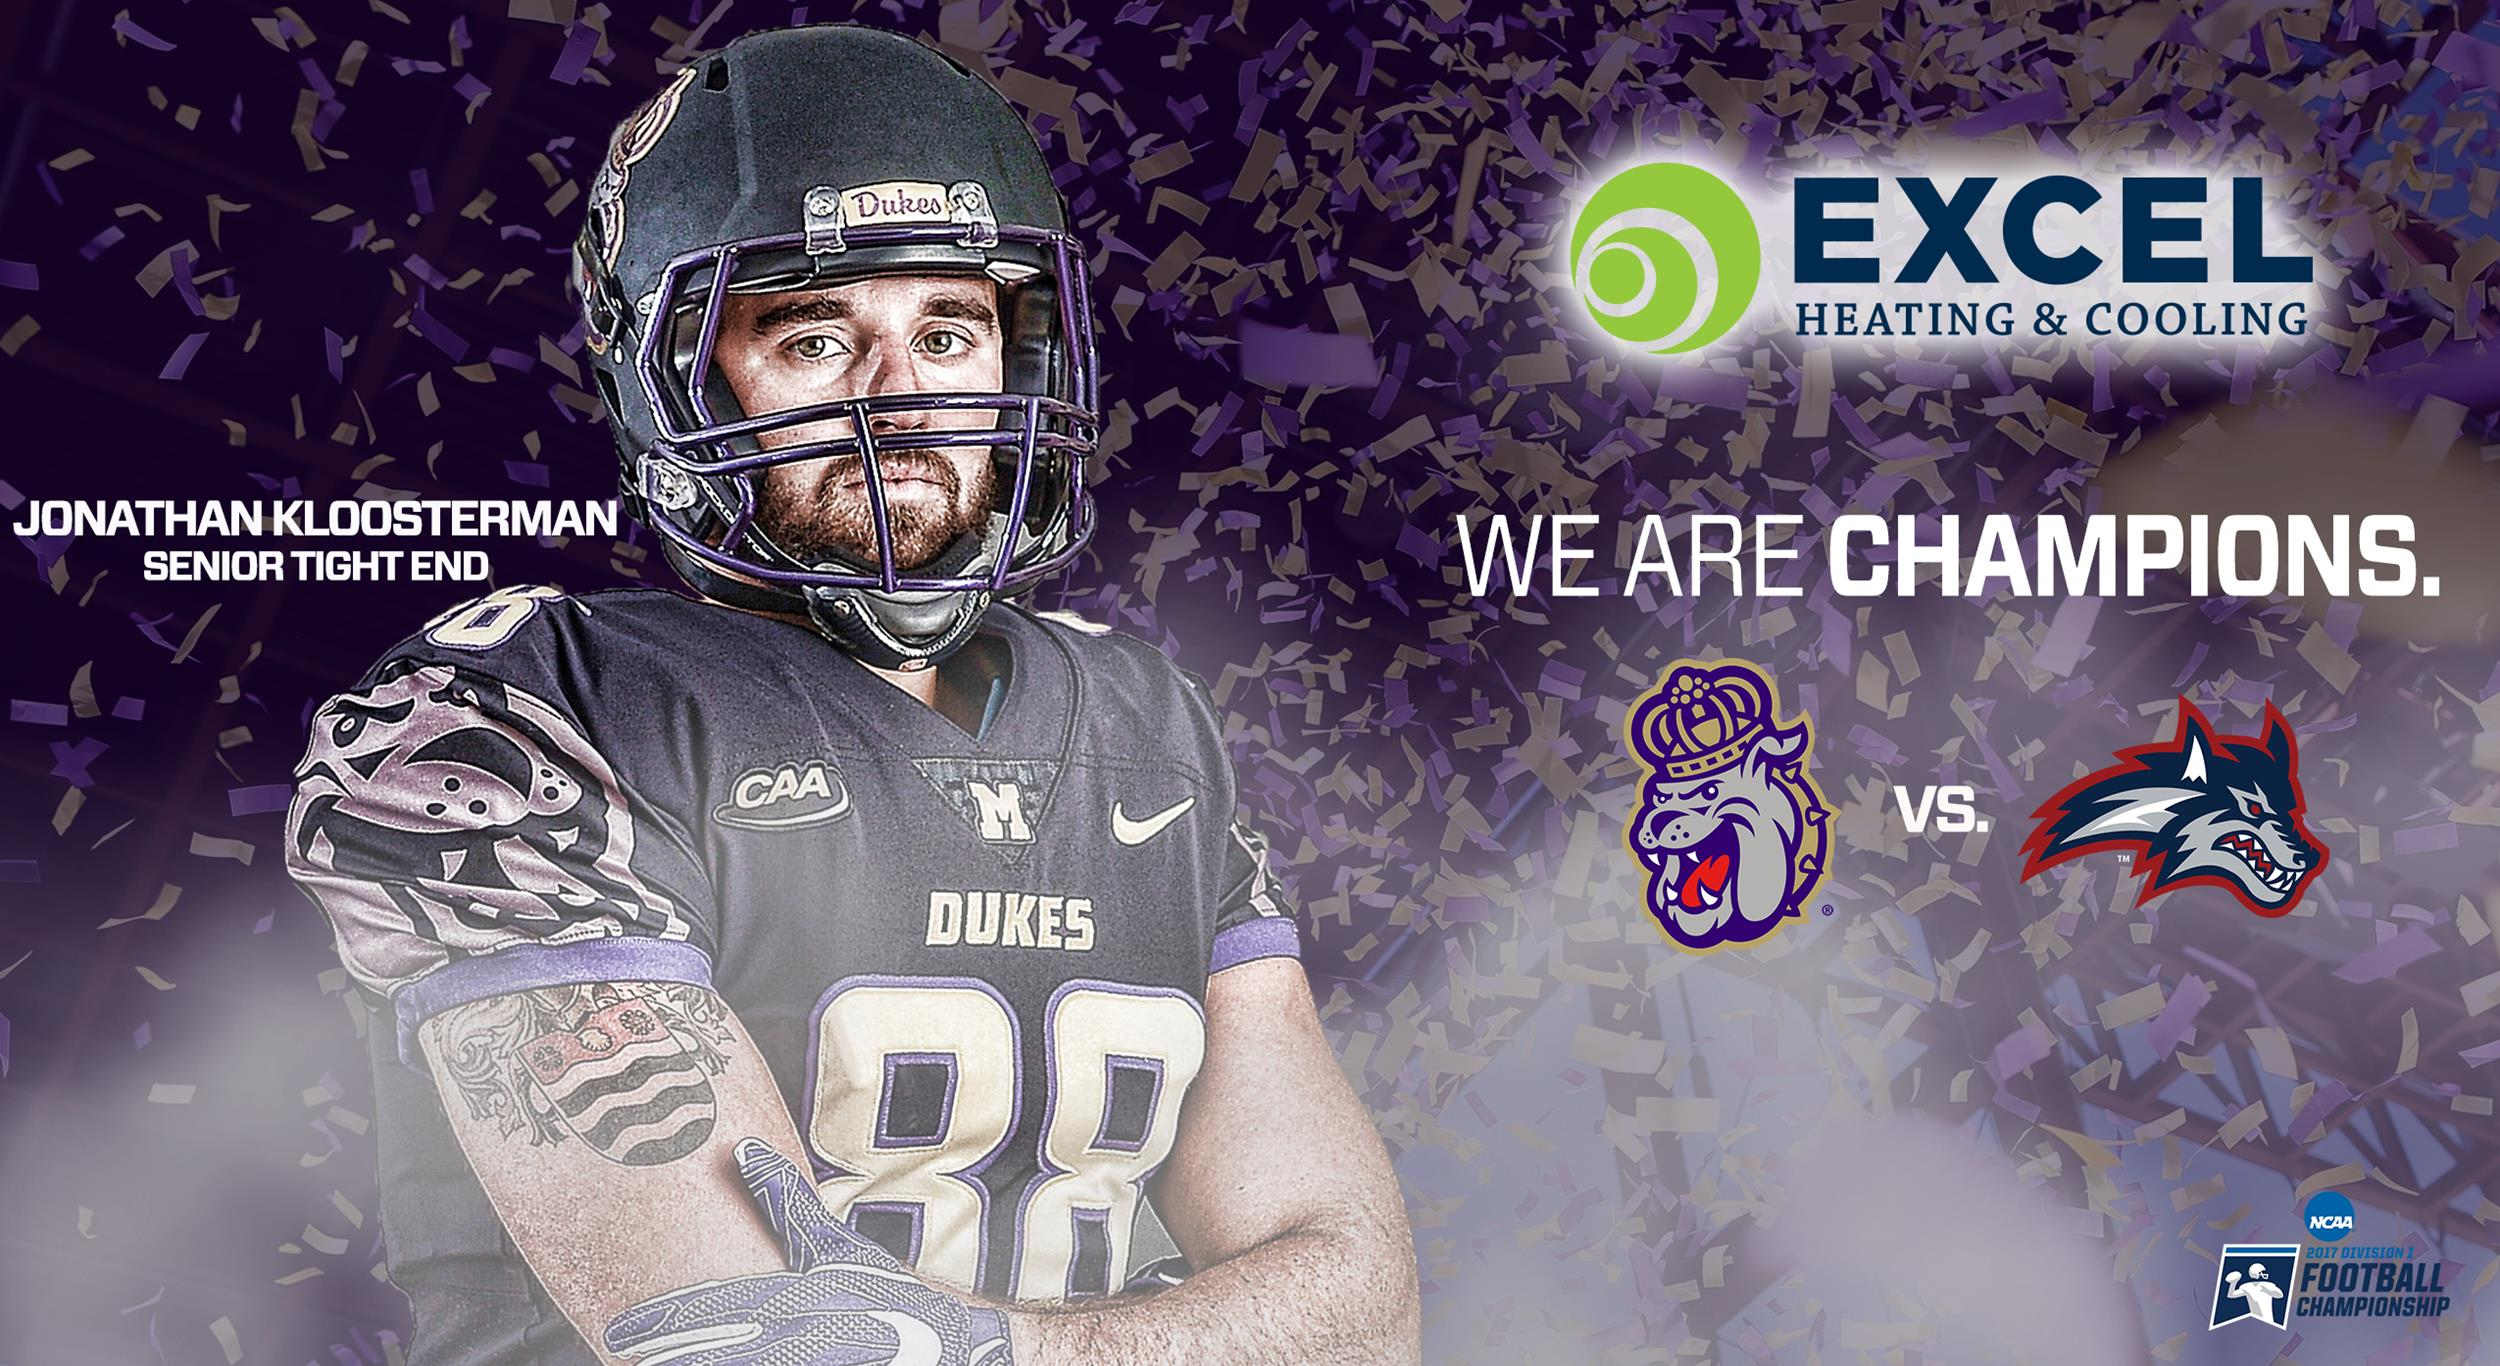 1 Dukes Match Up With 10 Stony Brook In Fcs Second Round